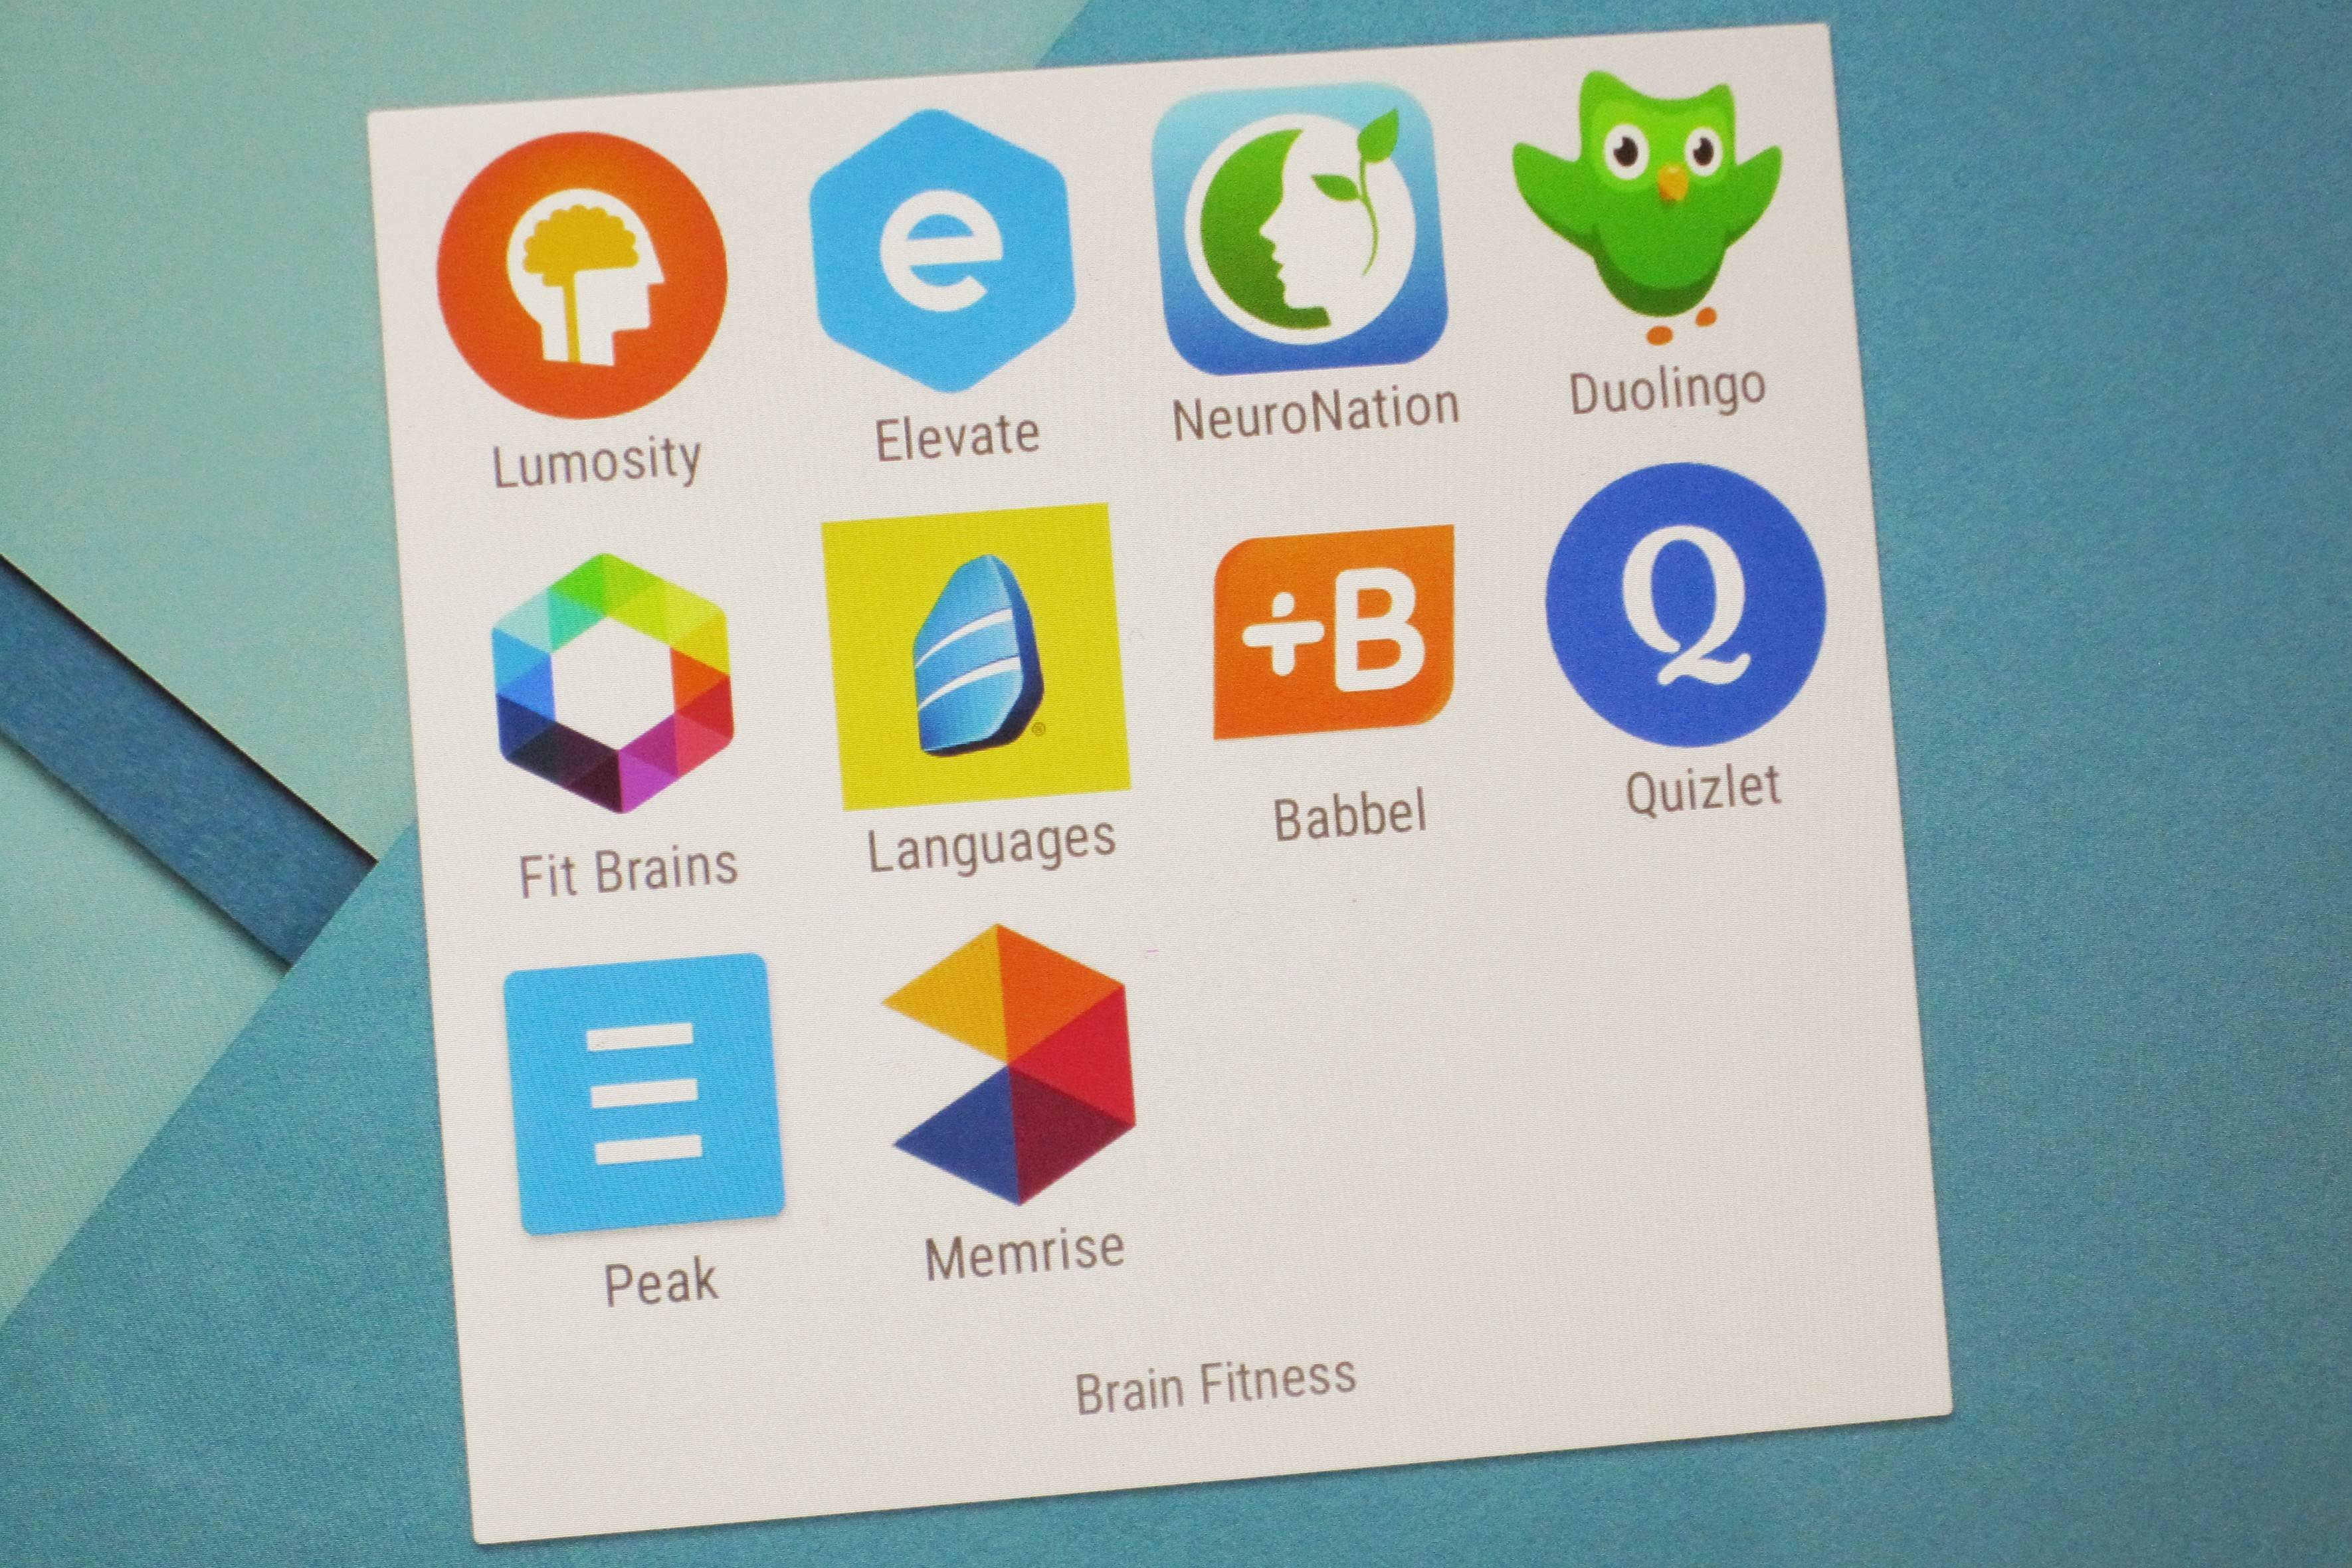 brain-fitness-apps-android-100571816-orig1